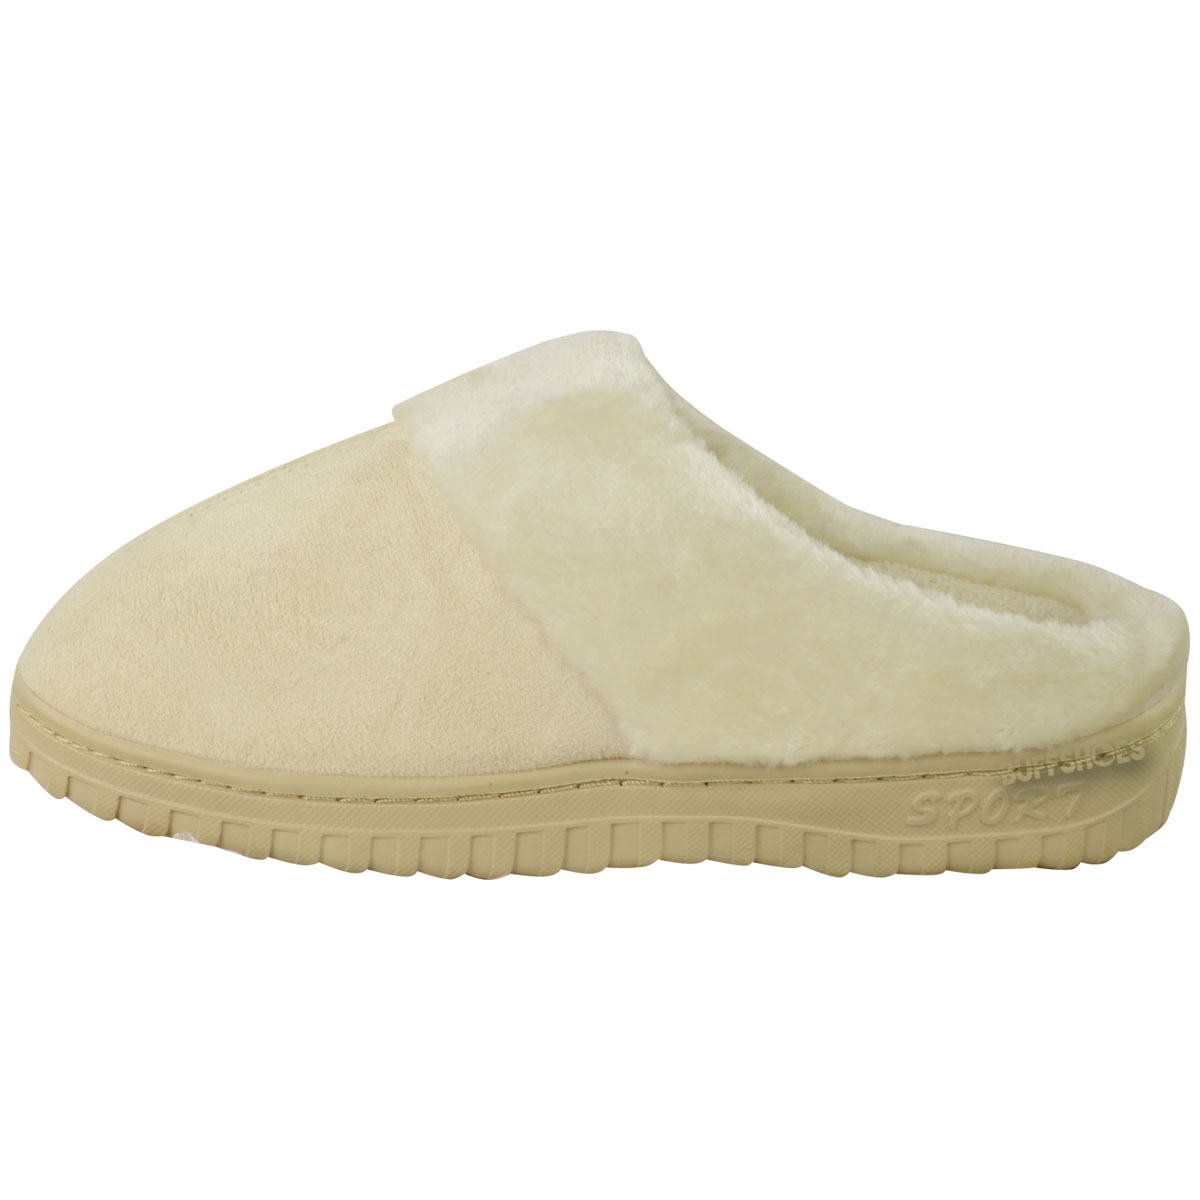 Suede Women's Clogs & Mules: seebot.ga - Your Online Women's Shoes Store! Get 5% in rewards with Club O!